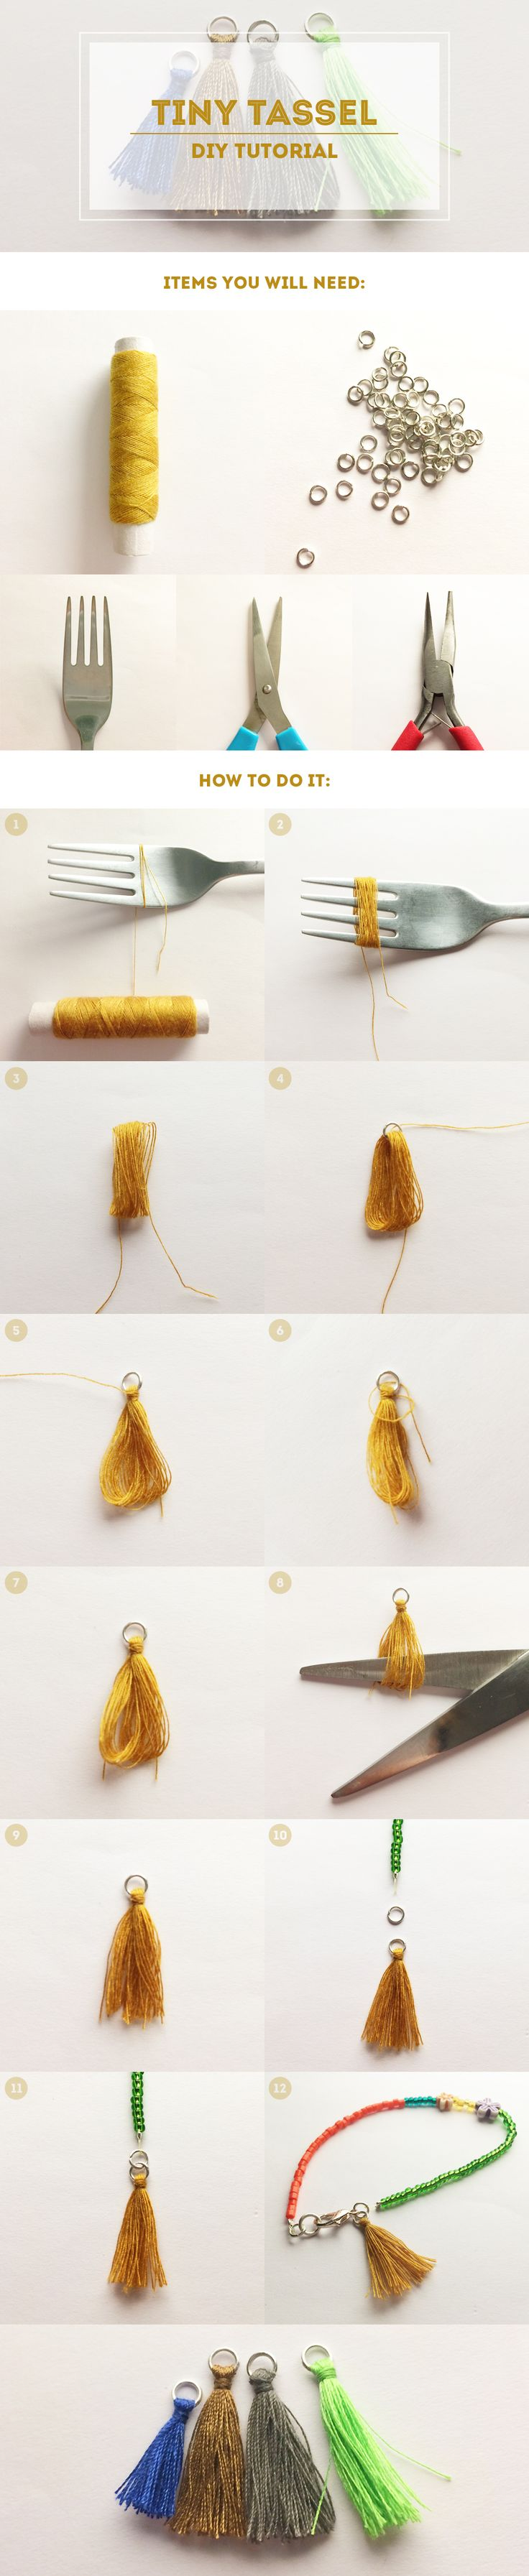 Tiny tassel DIY Tutorial More